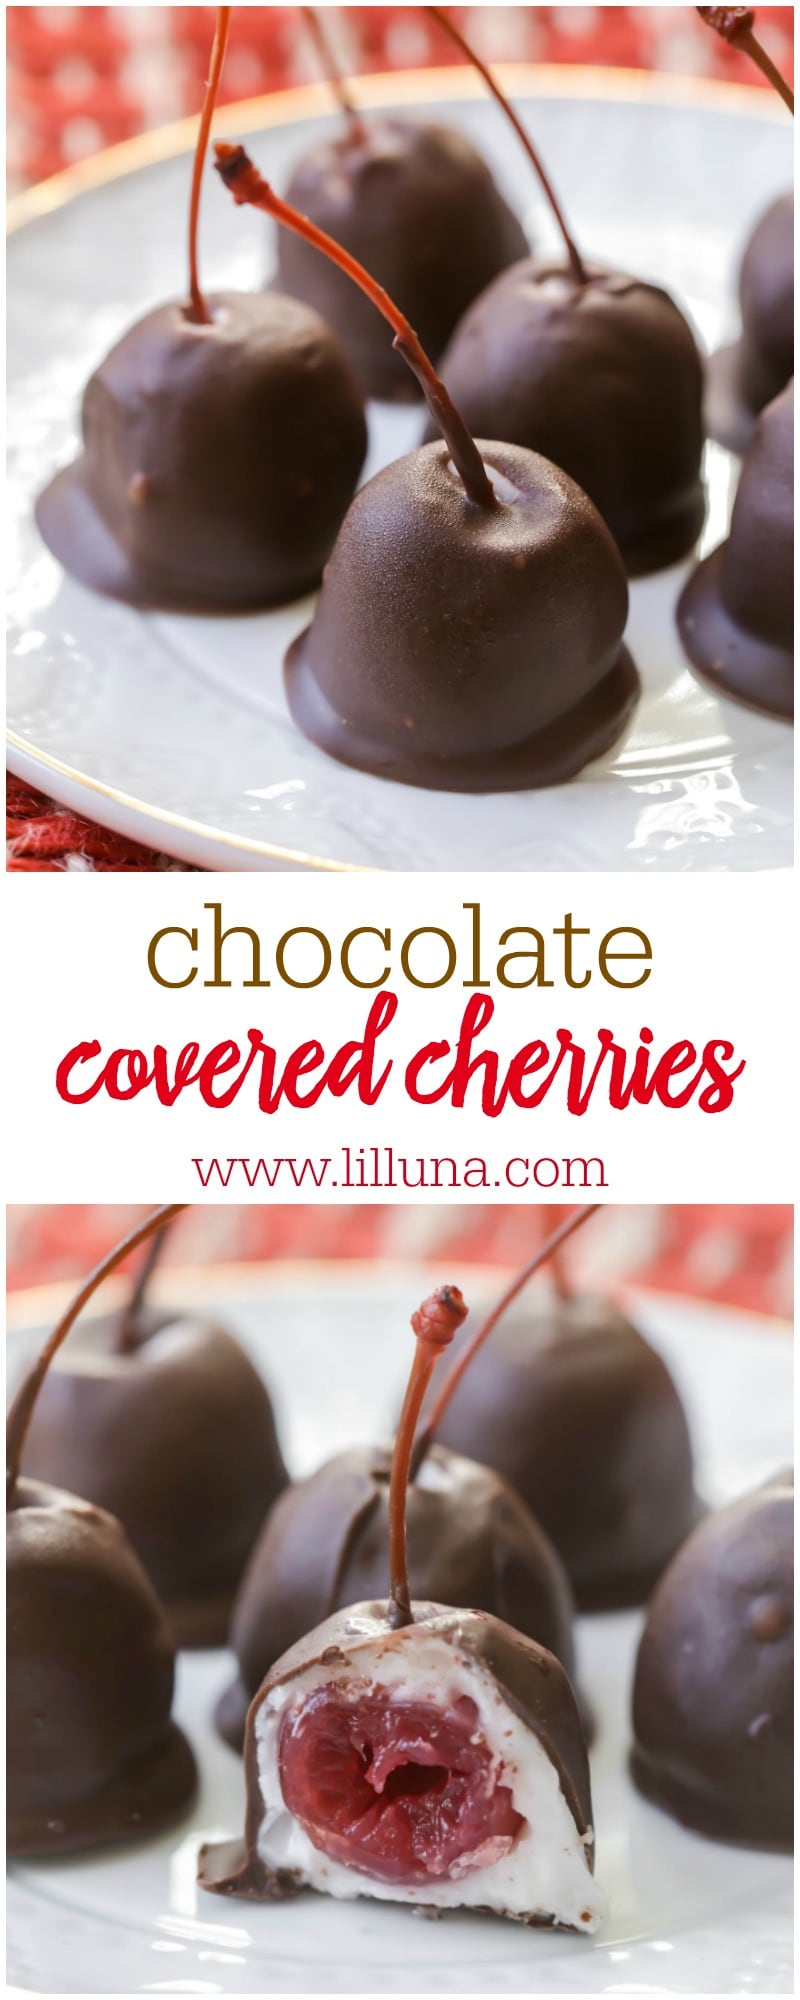 Homemade Chocolate Covered Cherries - just like you buy them in the box! Now you can make these yummy holiday treats at home.